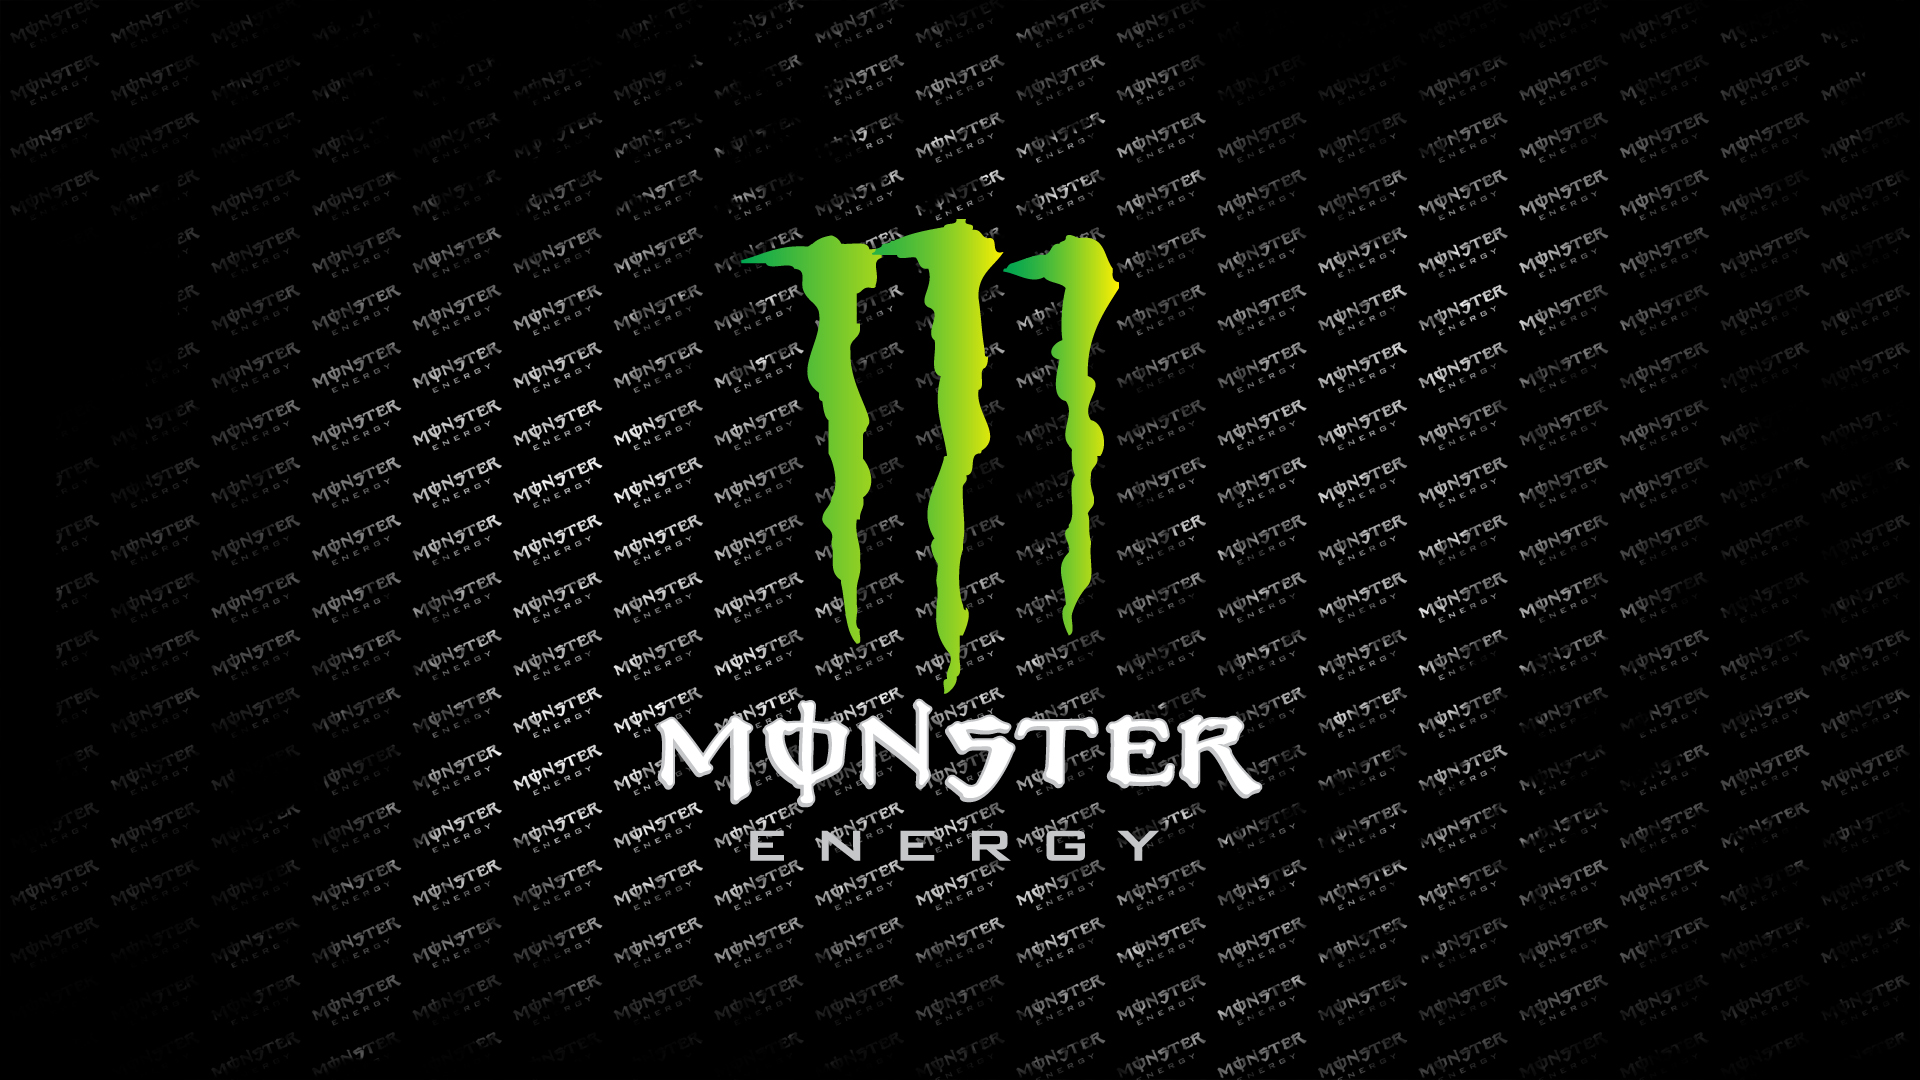 Monster Energy Backgrounds 1920x1080